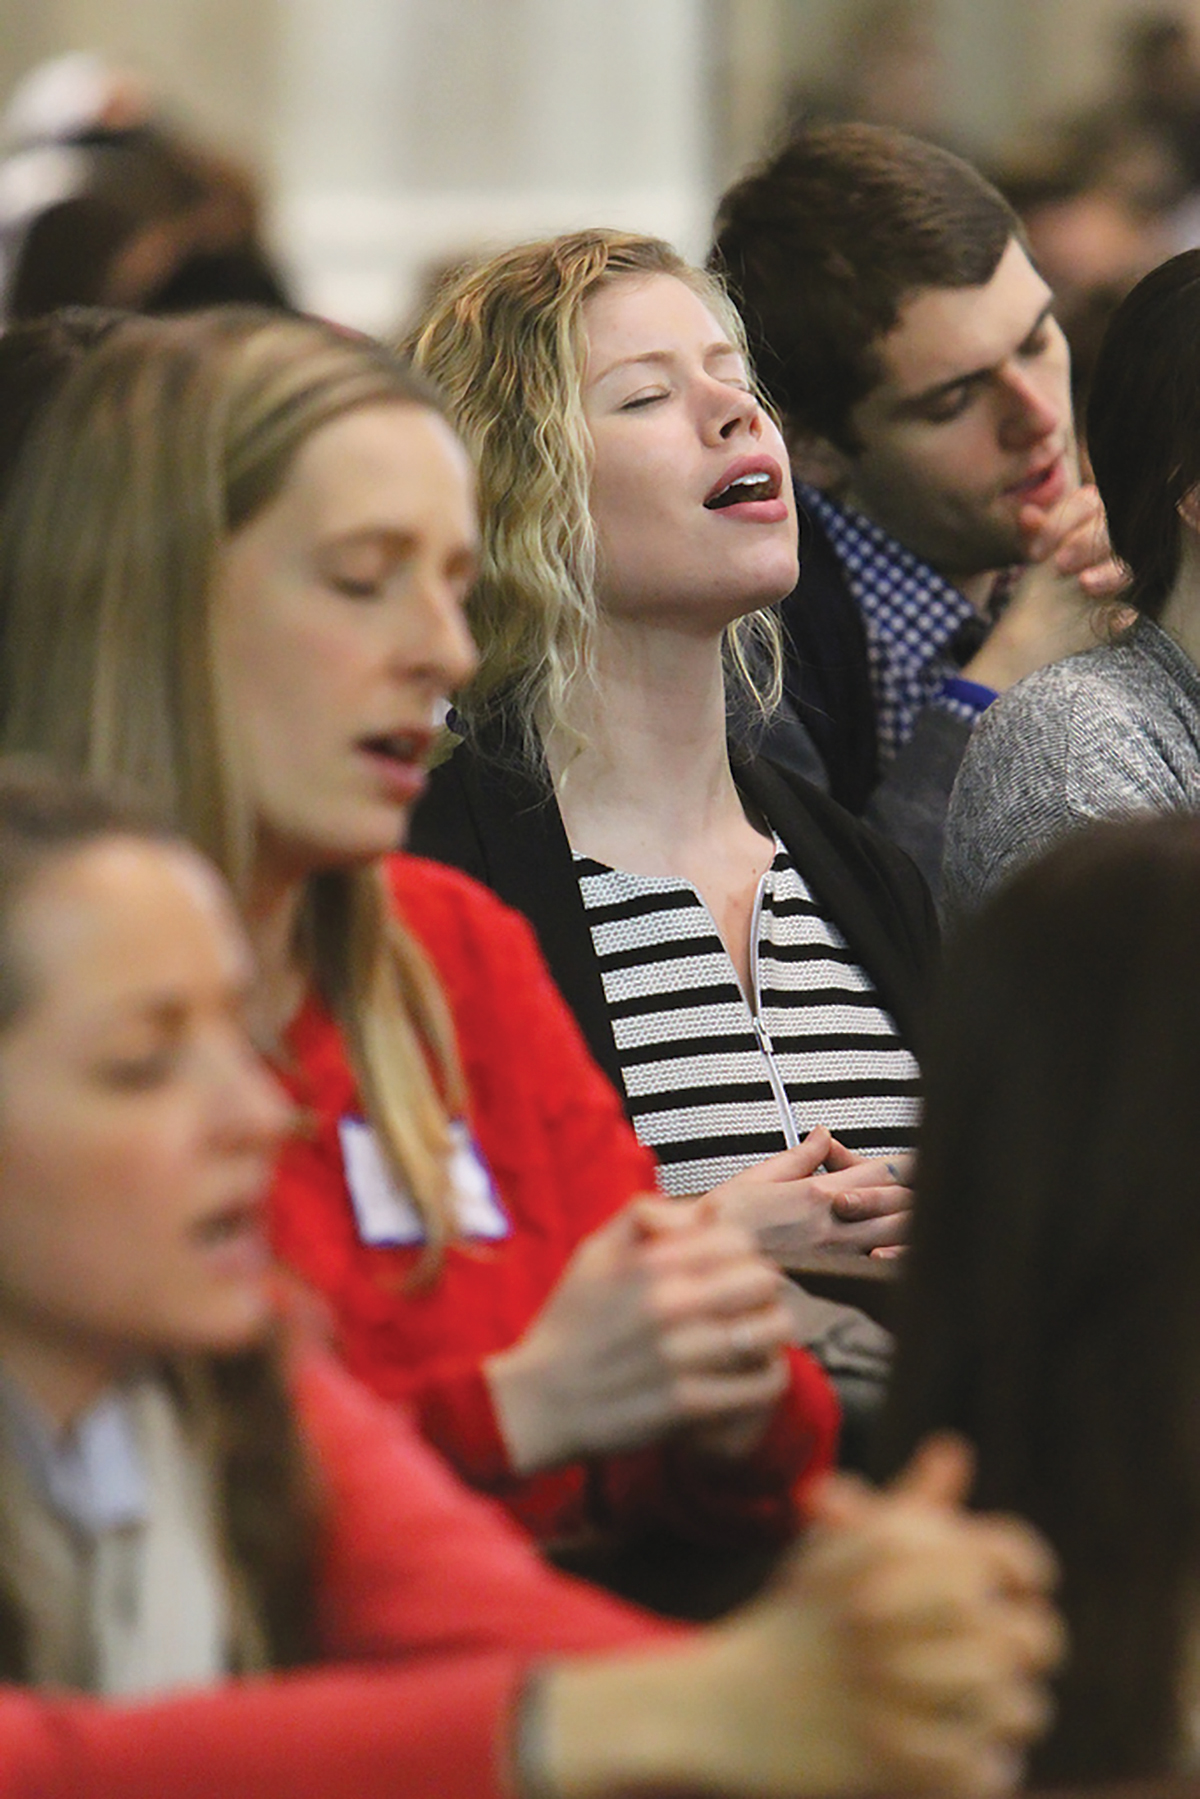 Why Is It So Hard For Young Catholics To Find The Right